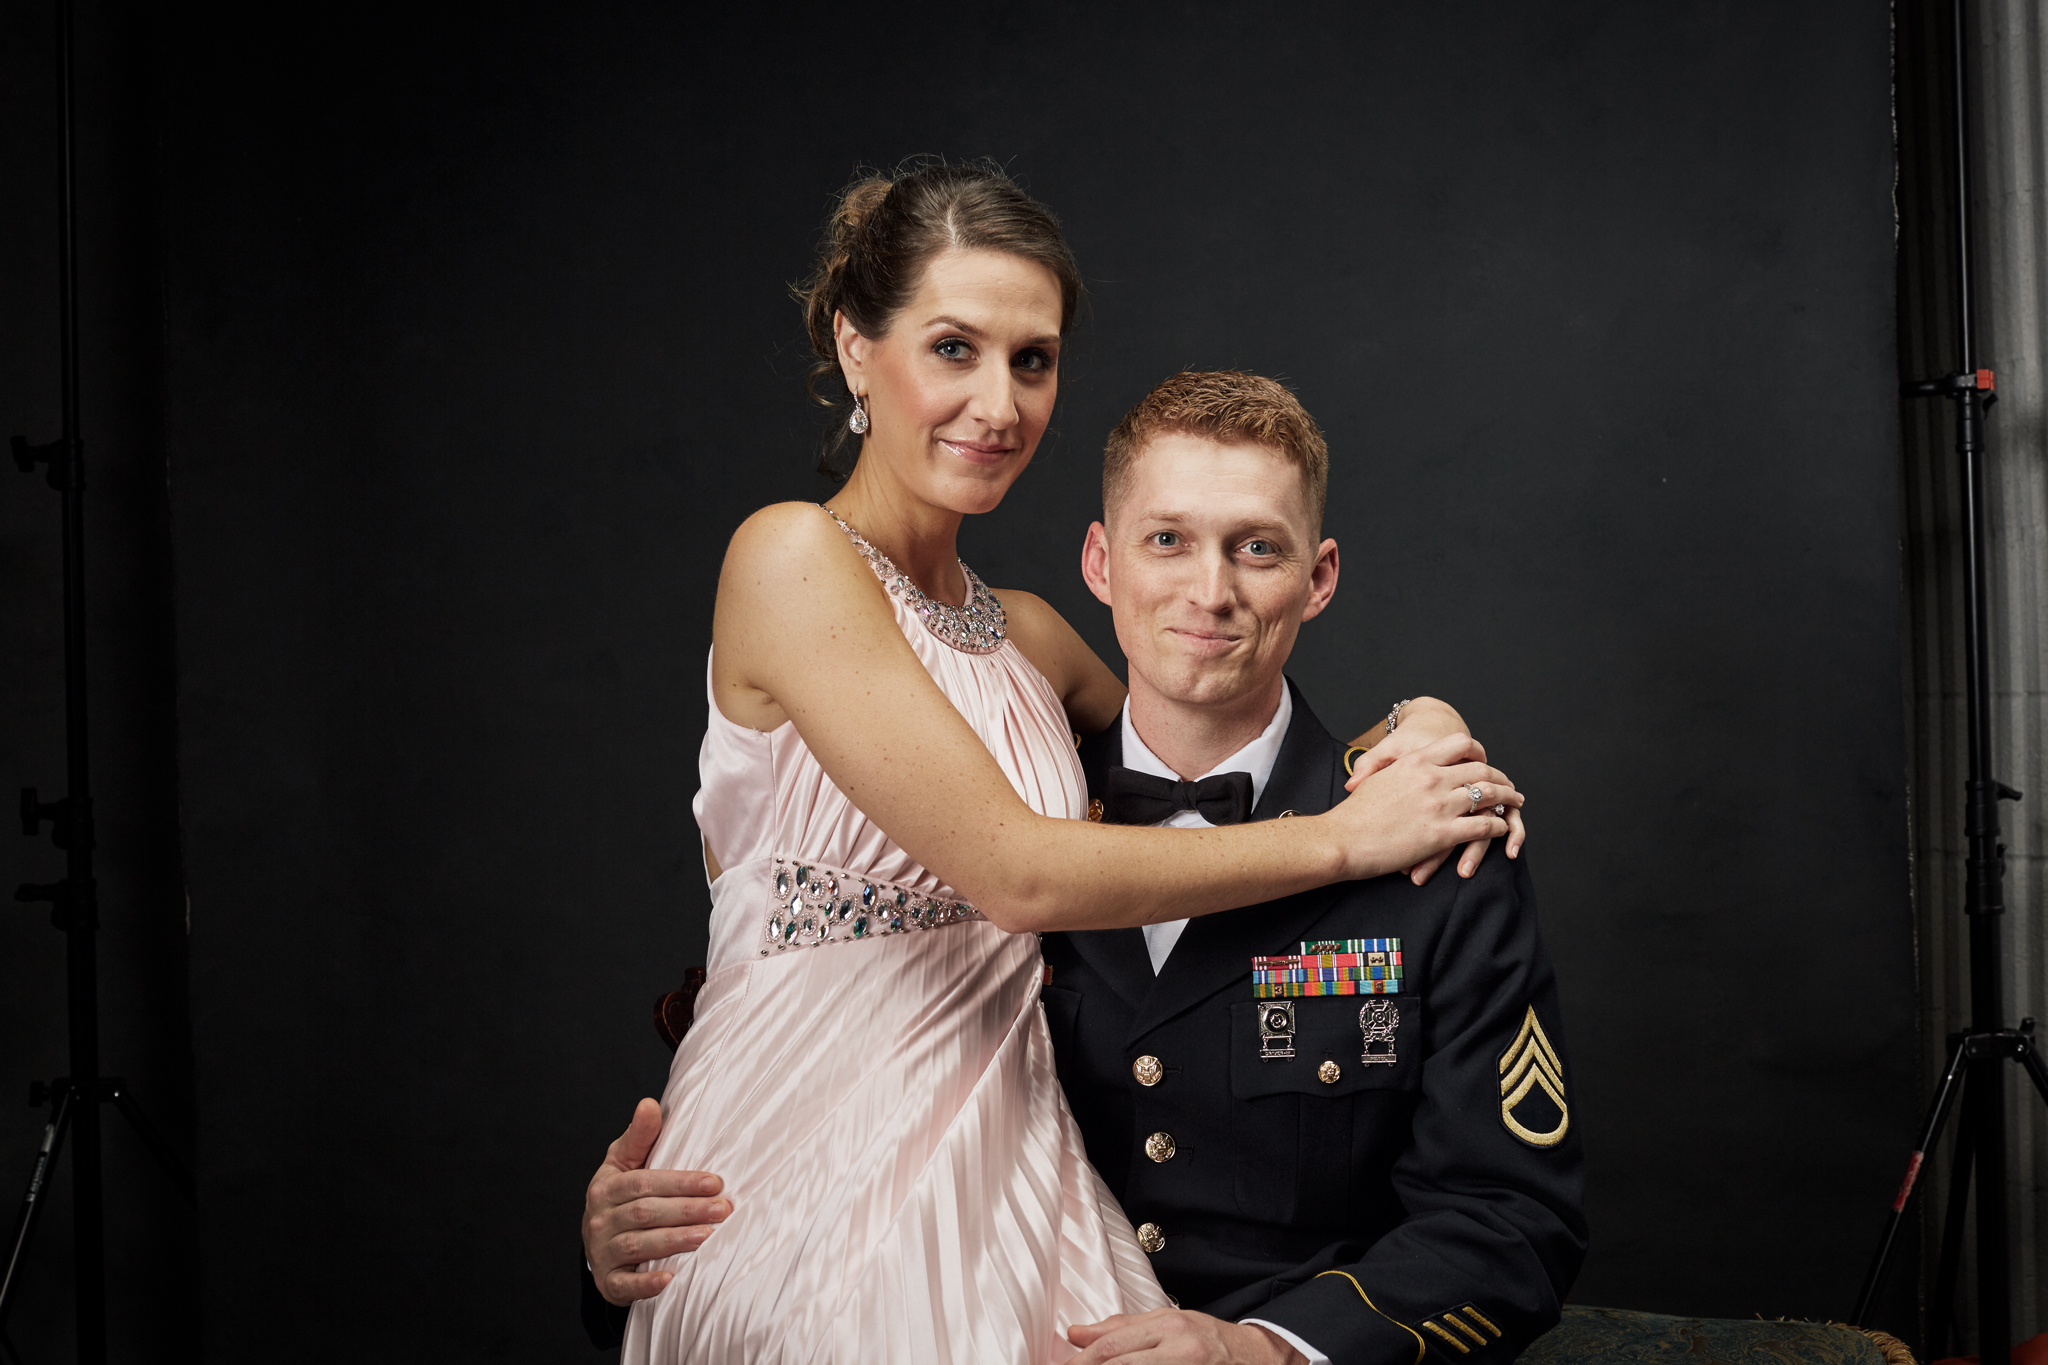 Taken for the 6th MP (CID) Military Ball, Joint Base Lewis-McChord, WA